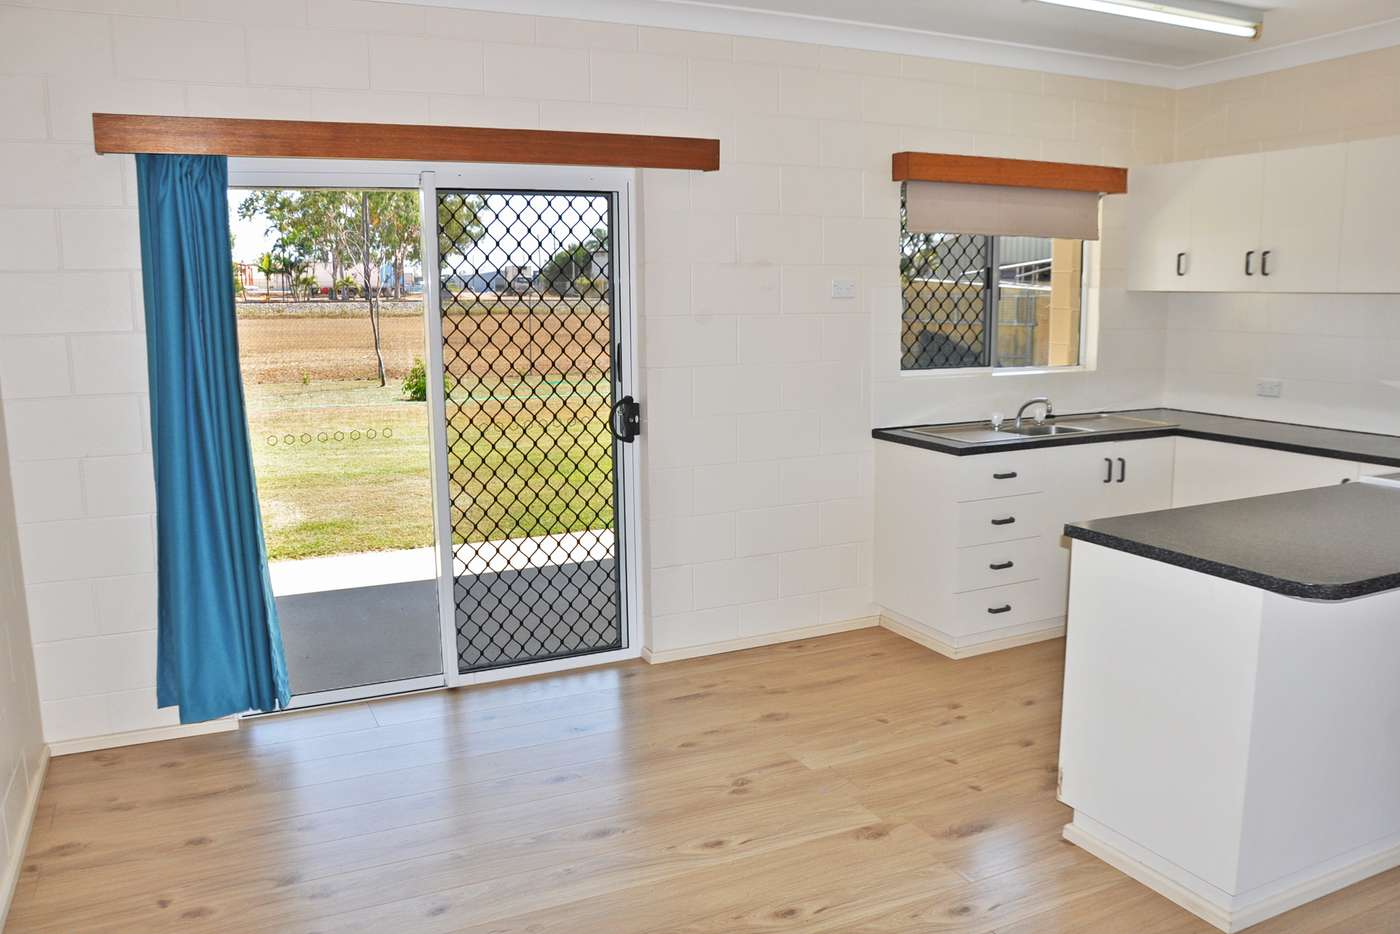 Sixth view of Homely house listing, 13 Kylie Close, Mareeba QLD 4880